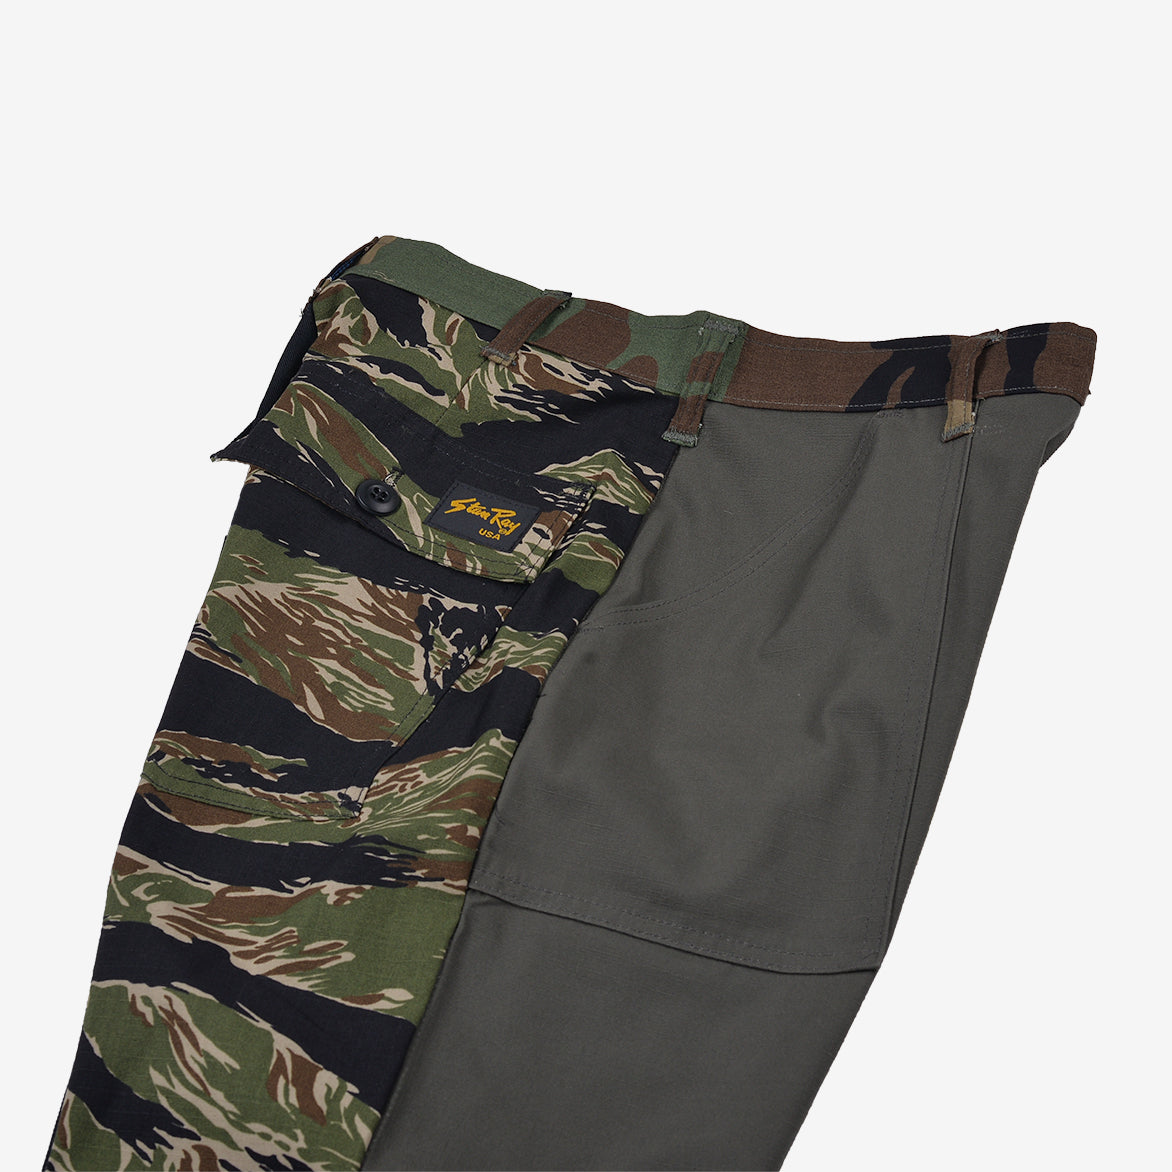 RECONSTRUCT TAPER FATIGUE PANT - OLIVE / NATURAL (1)